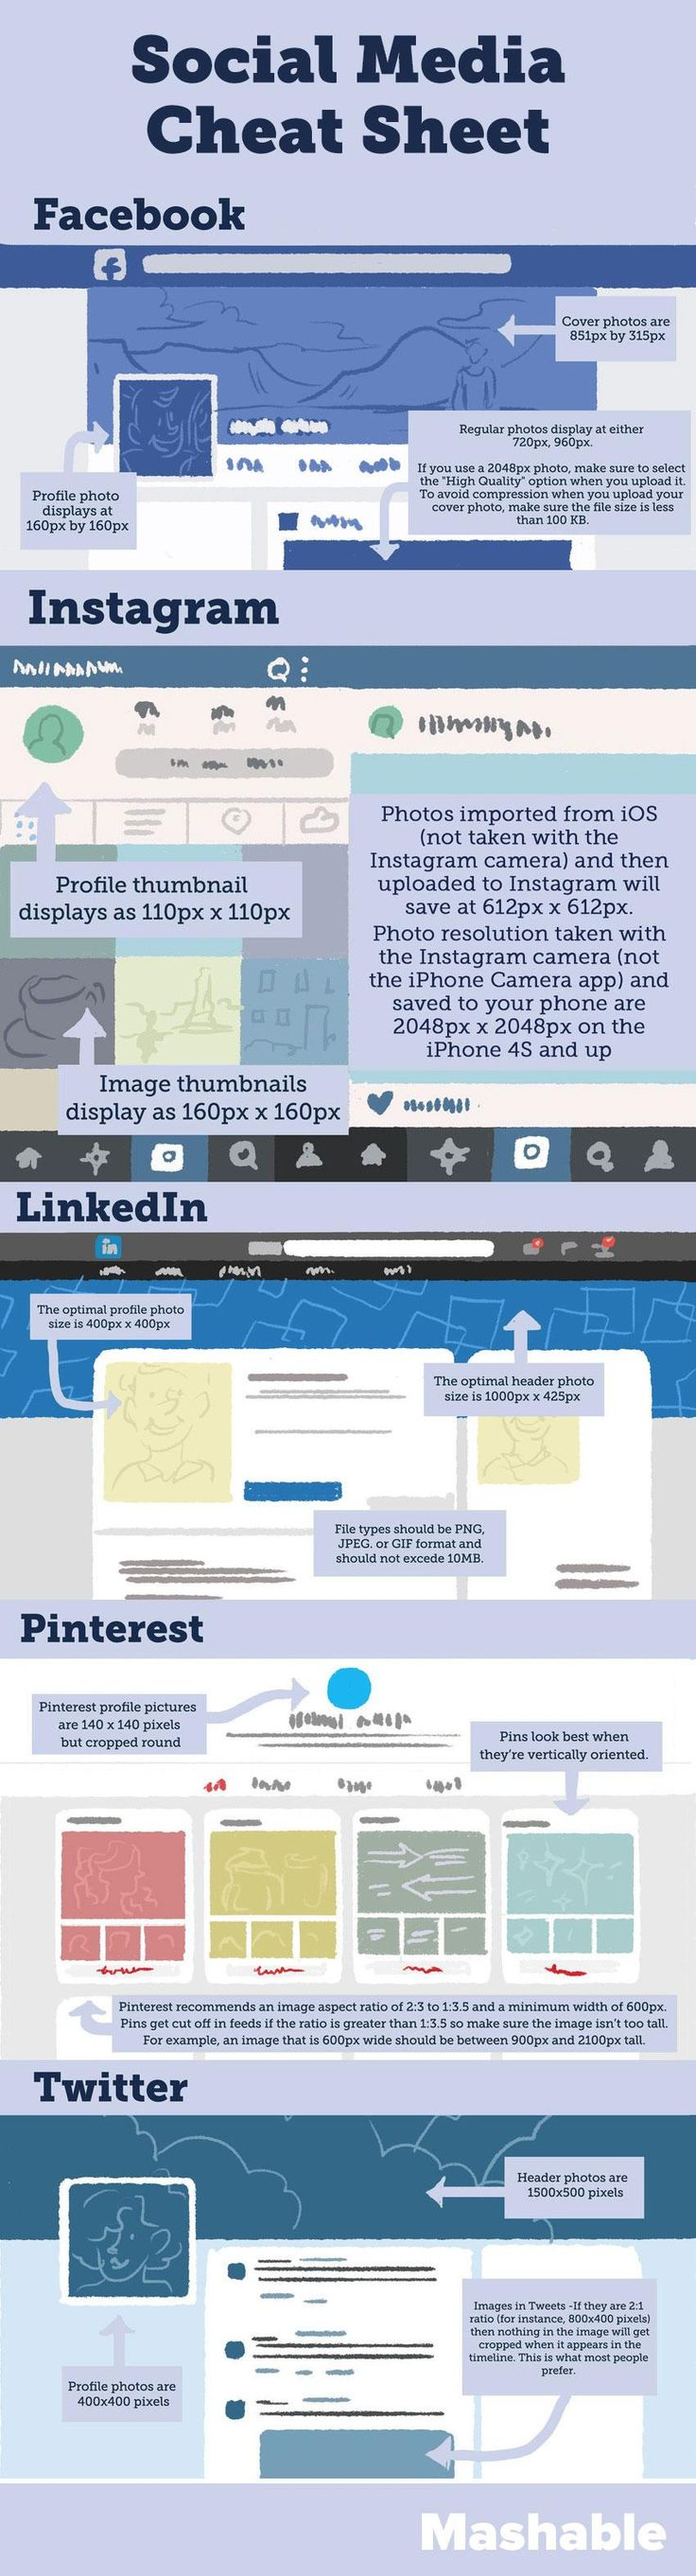 Get perfectly formatted formats for all of your social profiles with our Social Media Cheat Sheet.